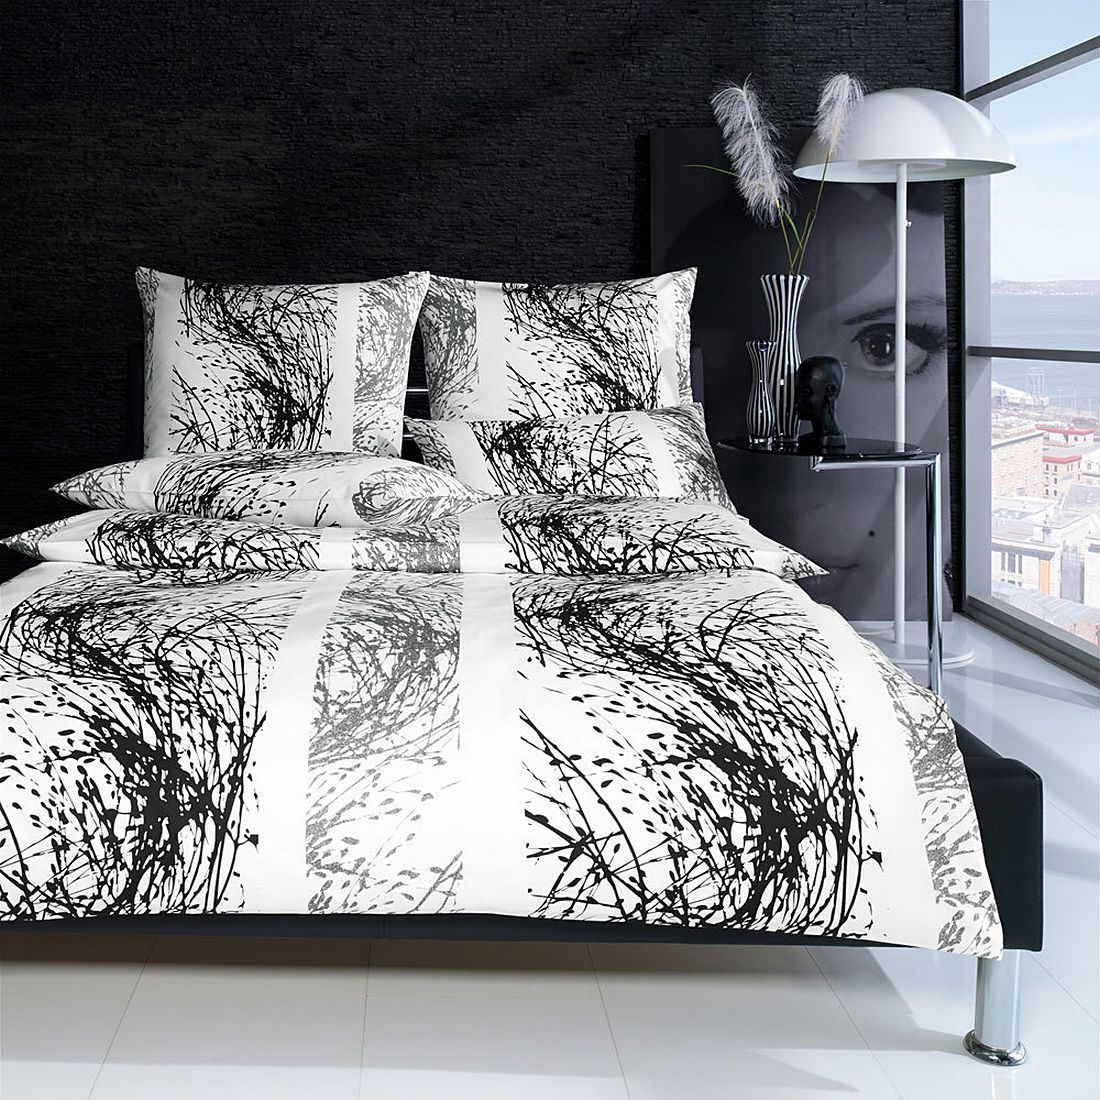 bettw sche l we black baumwolle schwarz 135x200 cm 80x80 cm yes for bed g nstig bestellen. Black Bedroom Furniture Sets. Home Design Ideas